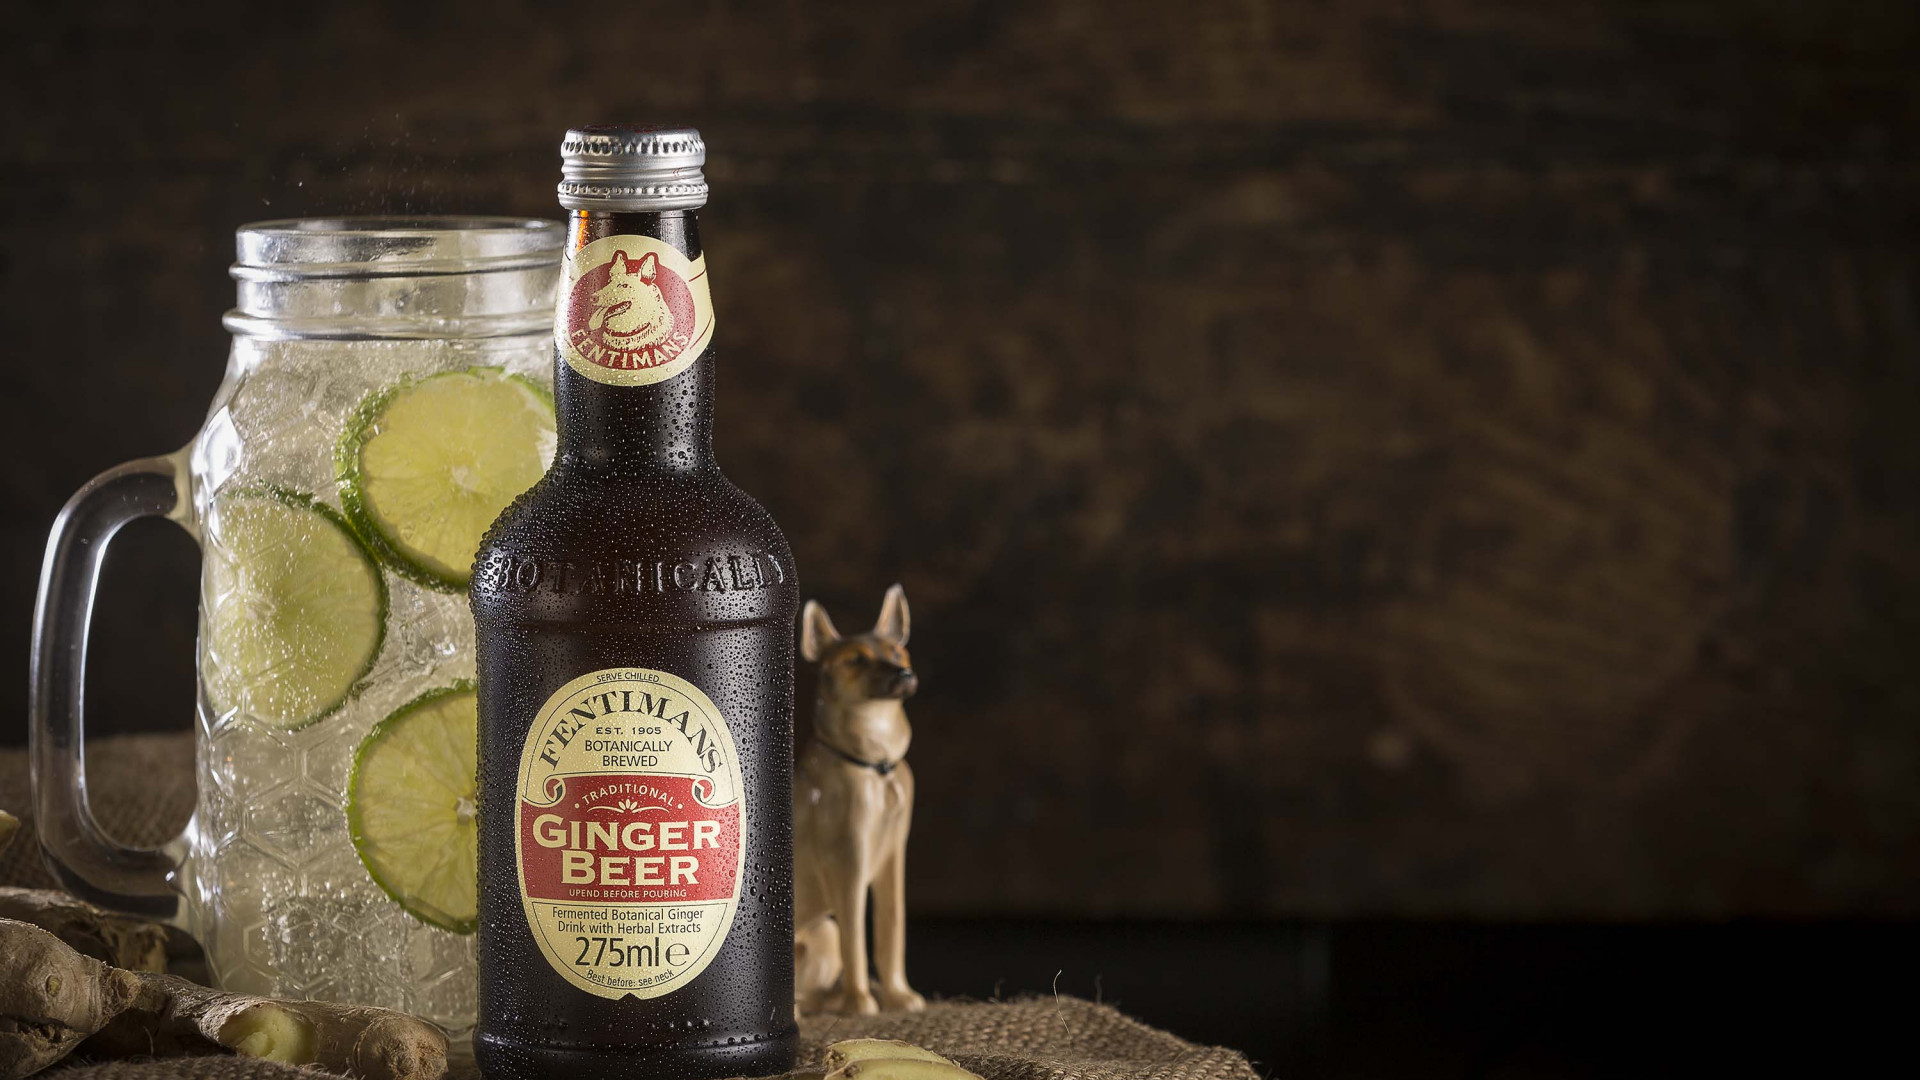 Old-school ginger beer: Fentiman's